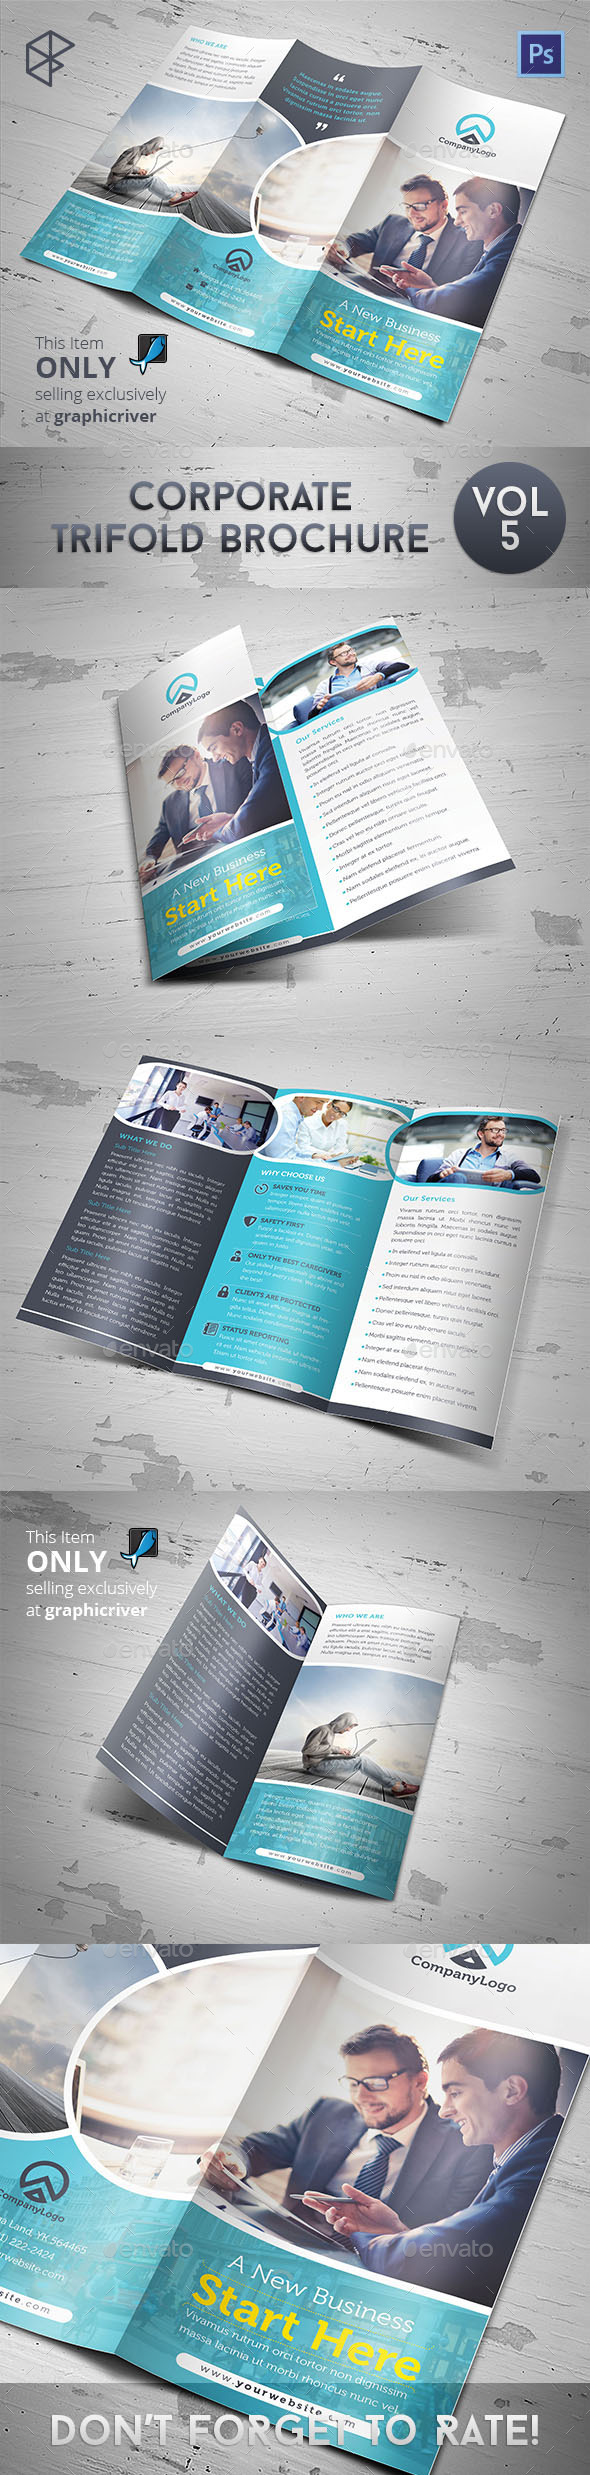 GraphicRiver Corporate Trifold Brochure Vol 5 9955621